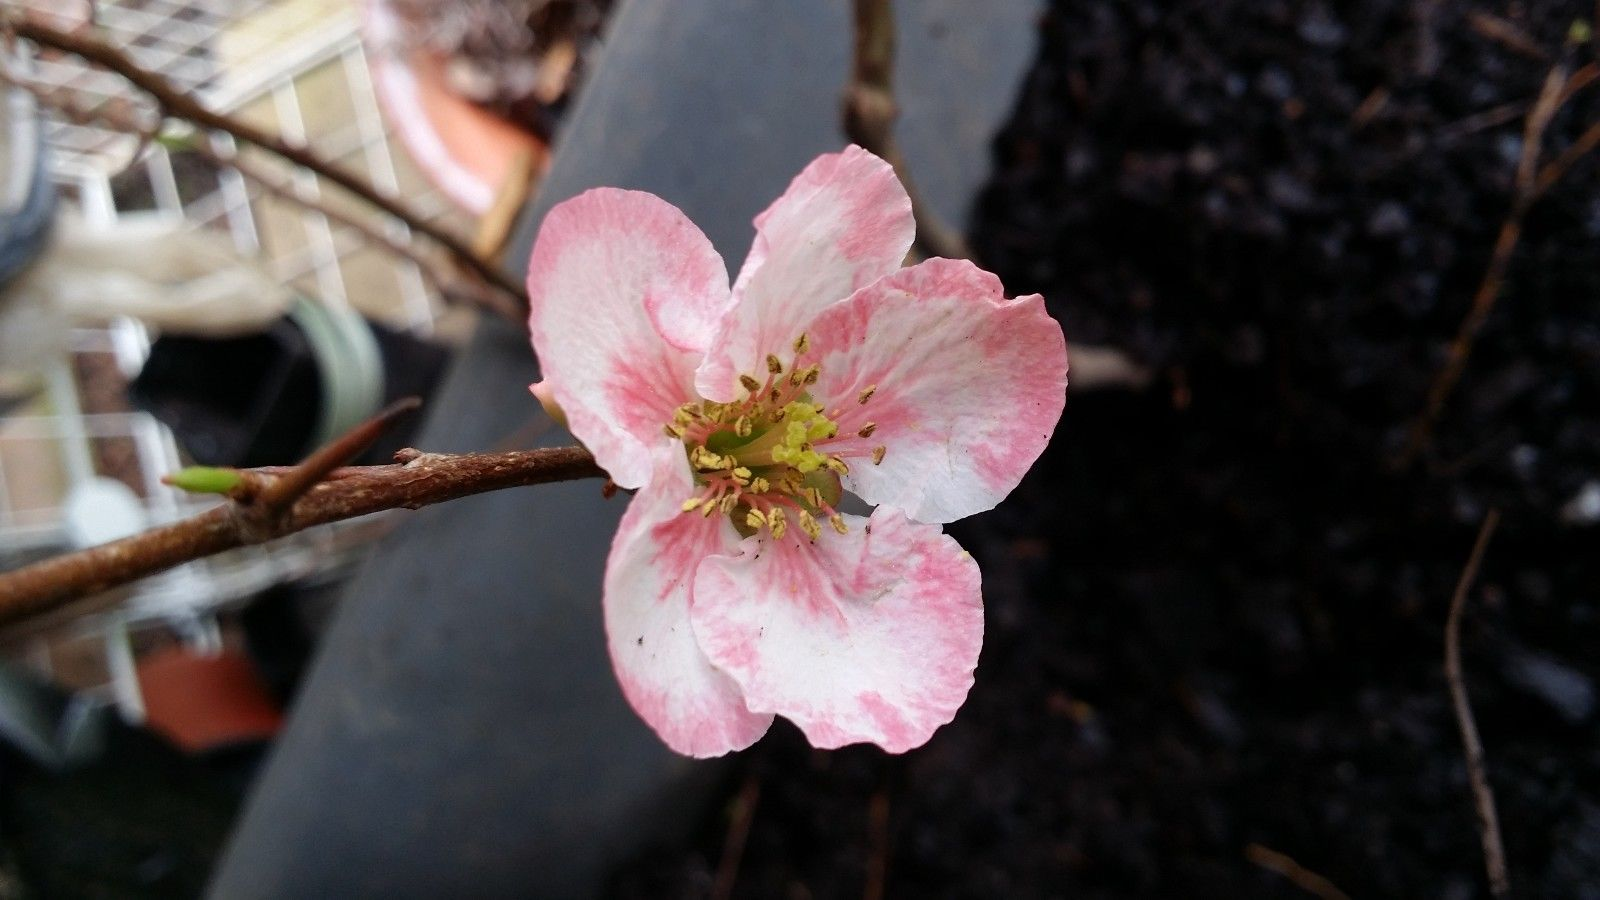 (1 Gallon)    TOYO-NISHIKI FLOWERING QUINCE- Profuse combinations of pink,  white and even sometimes red appear on the same branch. Popular in Japan due to its plentiful blooms and bonsai